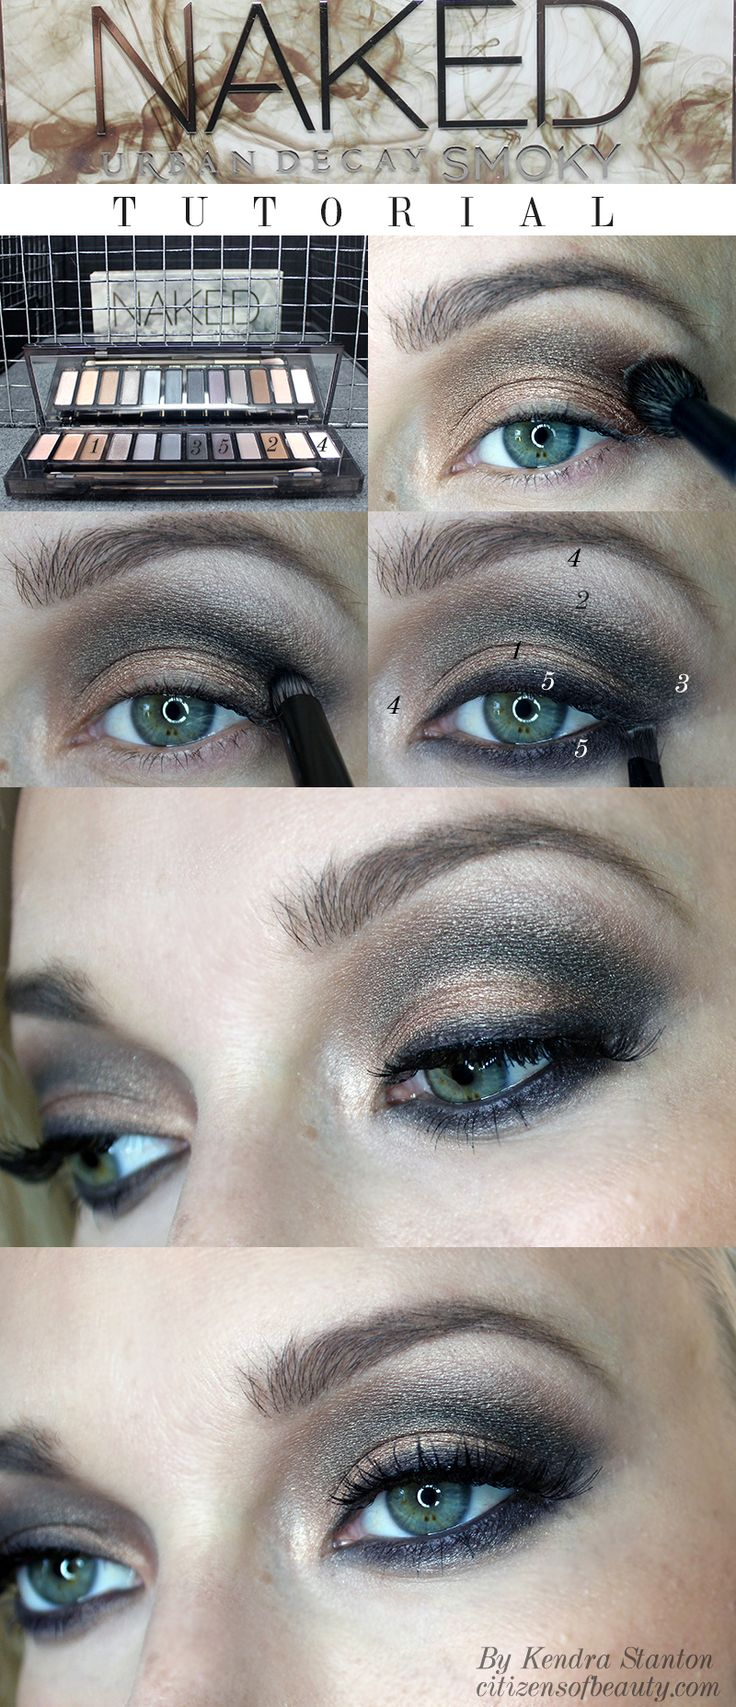 best So Pretty images on Pinterest  Makeup Make up and Makeup